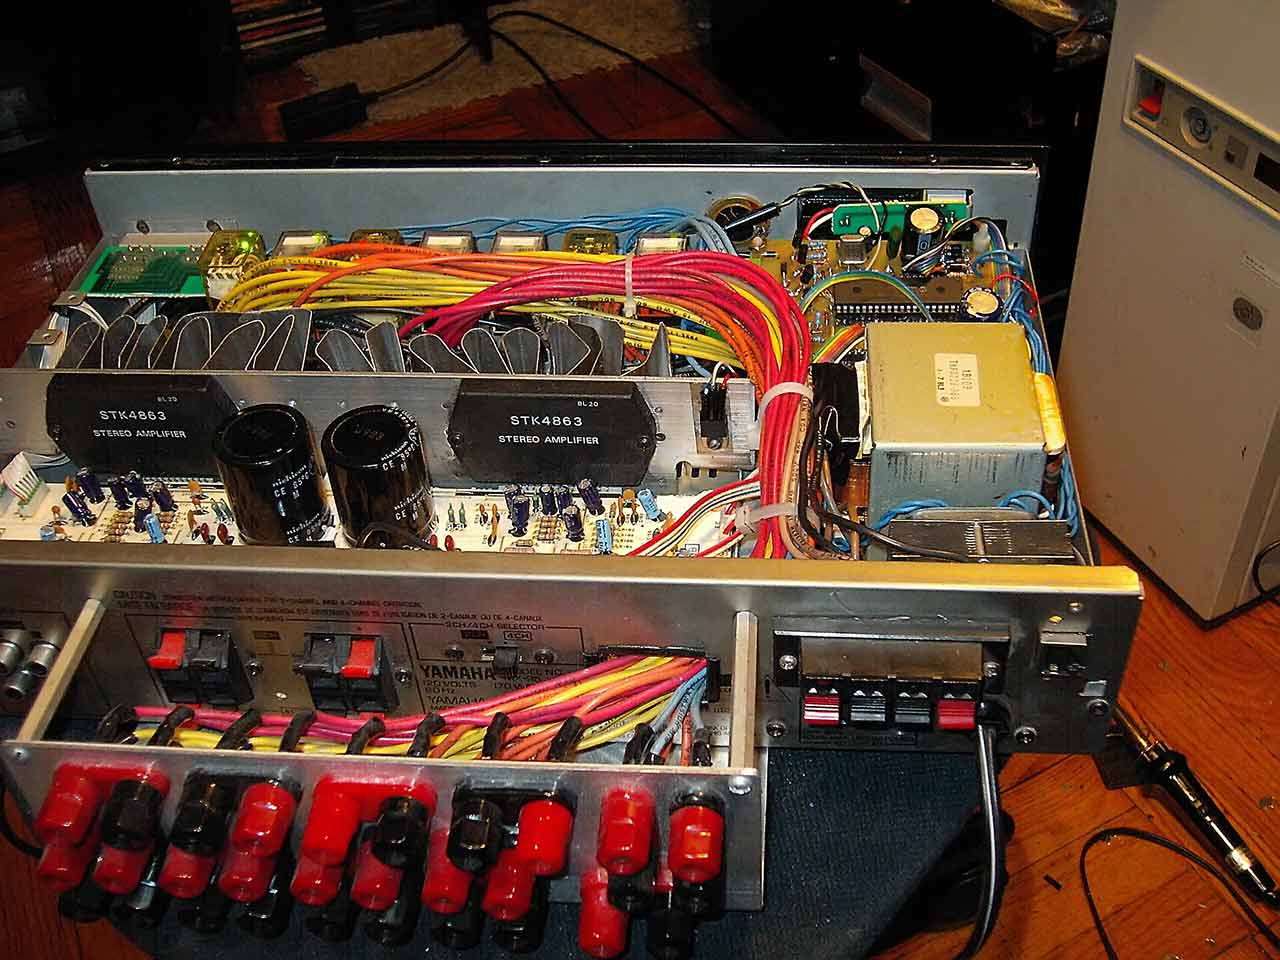 Microcontroller For Audio System Relay Switch Tube Amp The Picture Sch1 Shows Only One Wire Has To All 4 Wires At Same Time From Every That Is Why We Have Use 4p 2t Relays